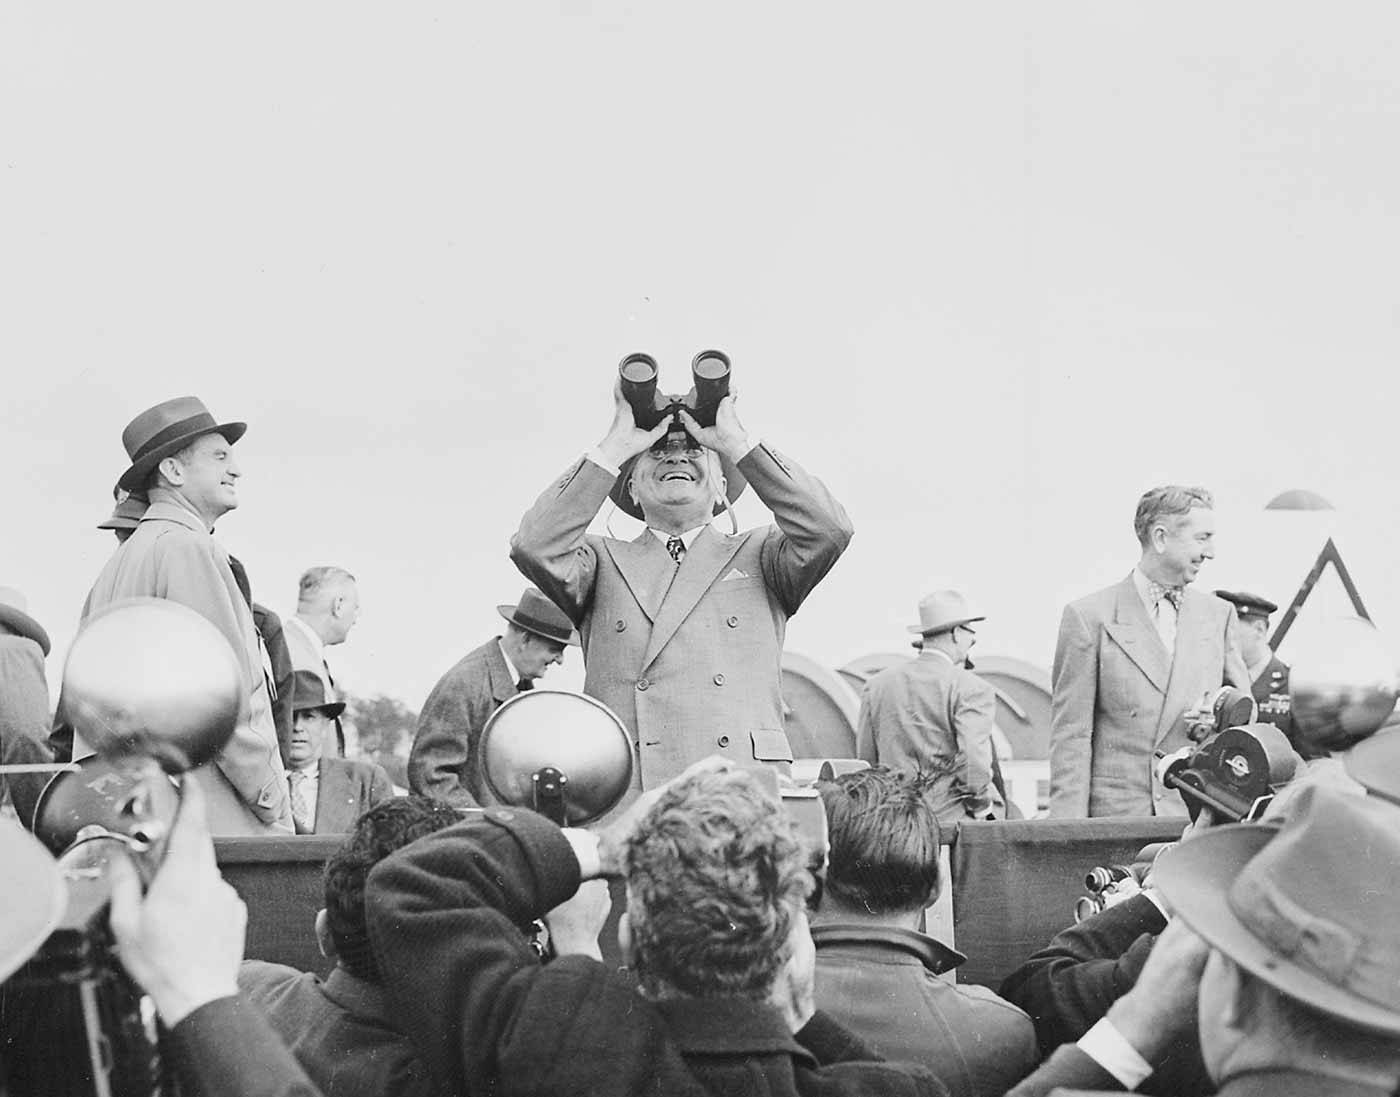 Photograph of President Truman using binoculars to observe an aerial display during an air show at Andrews Air Force